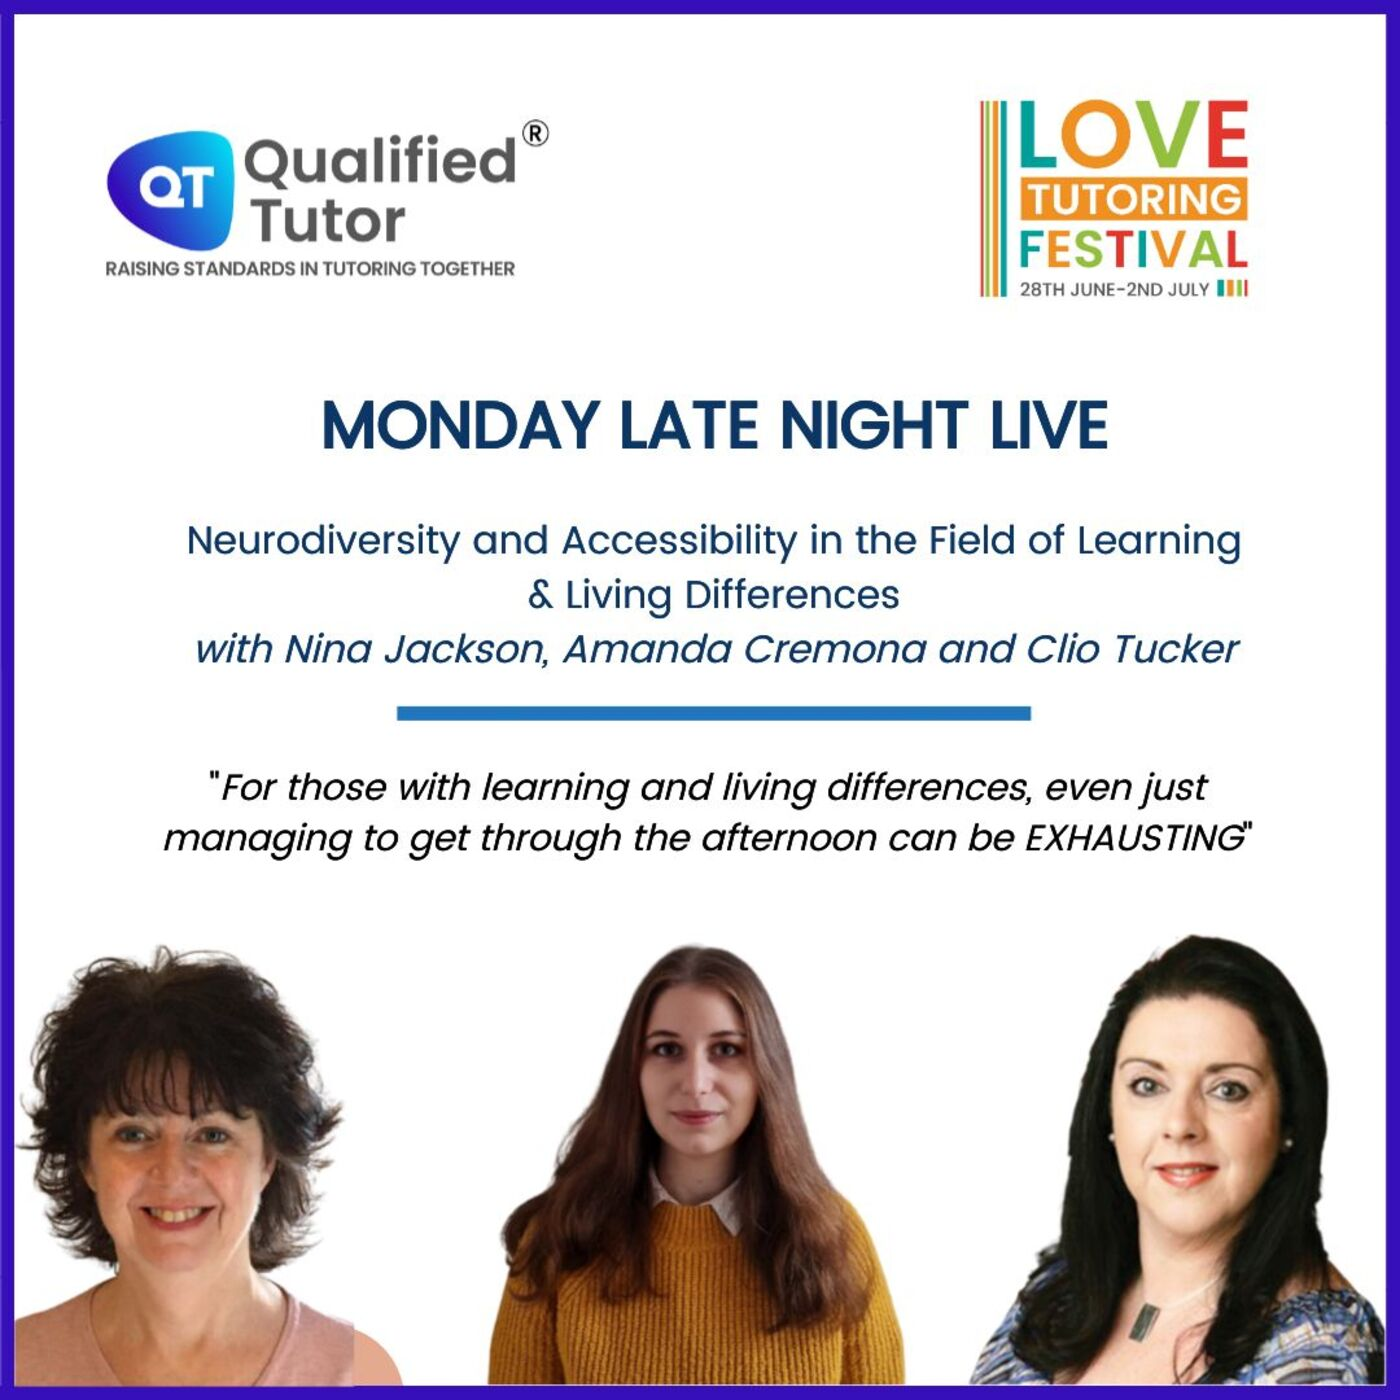 Love Tutoring Festival 2021 Podcast #1 - Neurodiversity and Accessibility in the Field of Learning & Living Differences